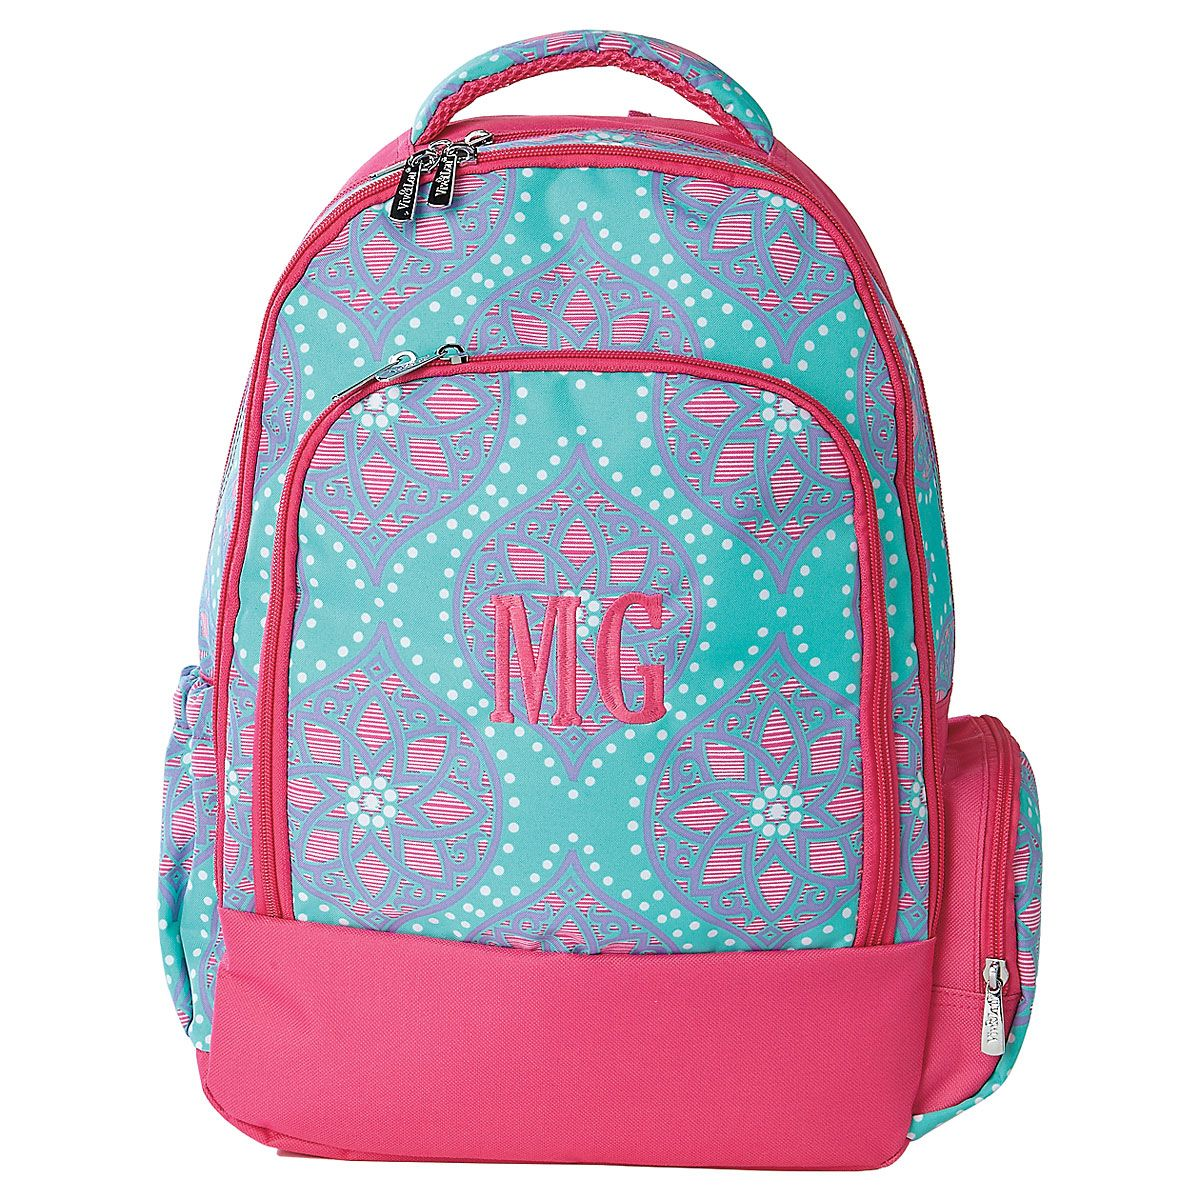 Marlee Backpack - Name